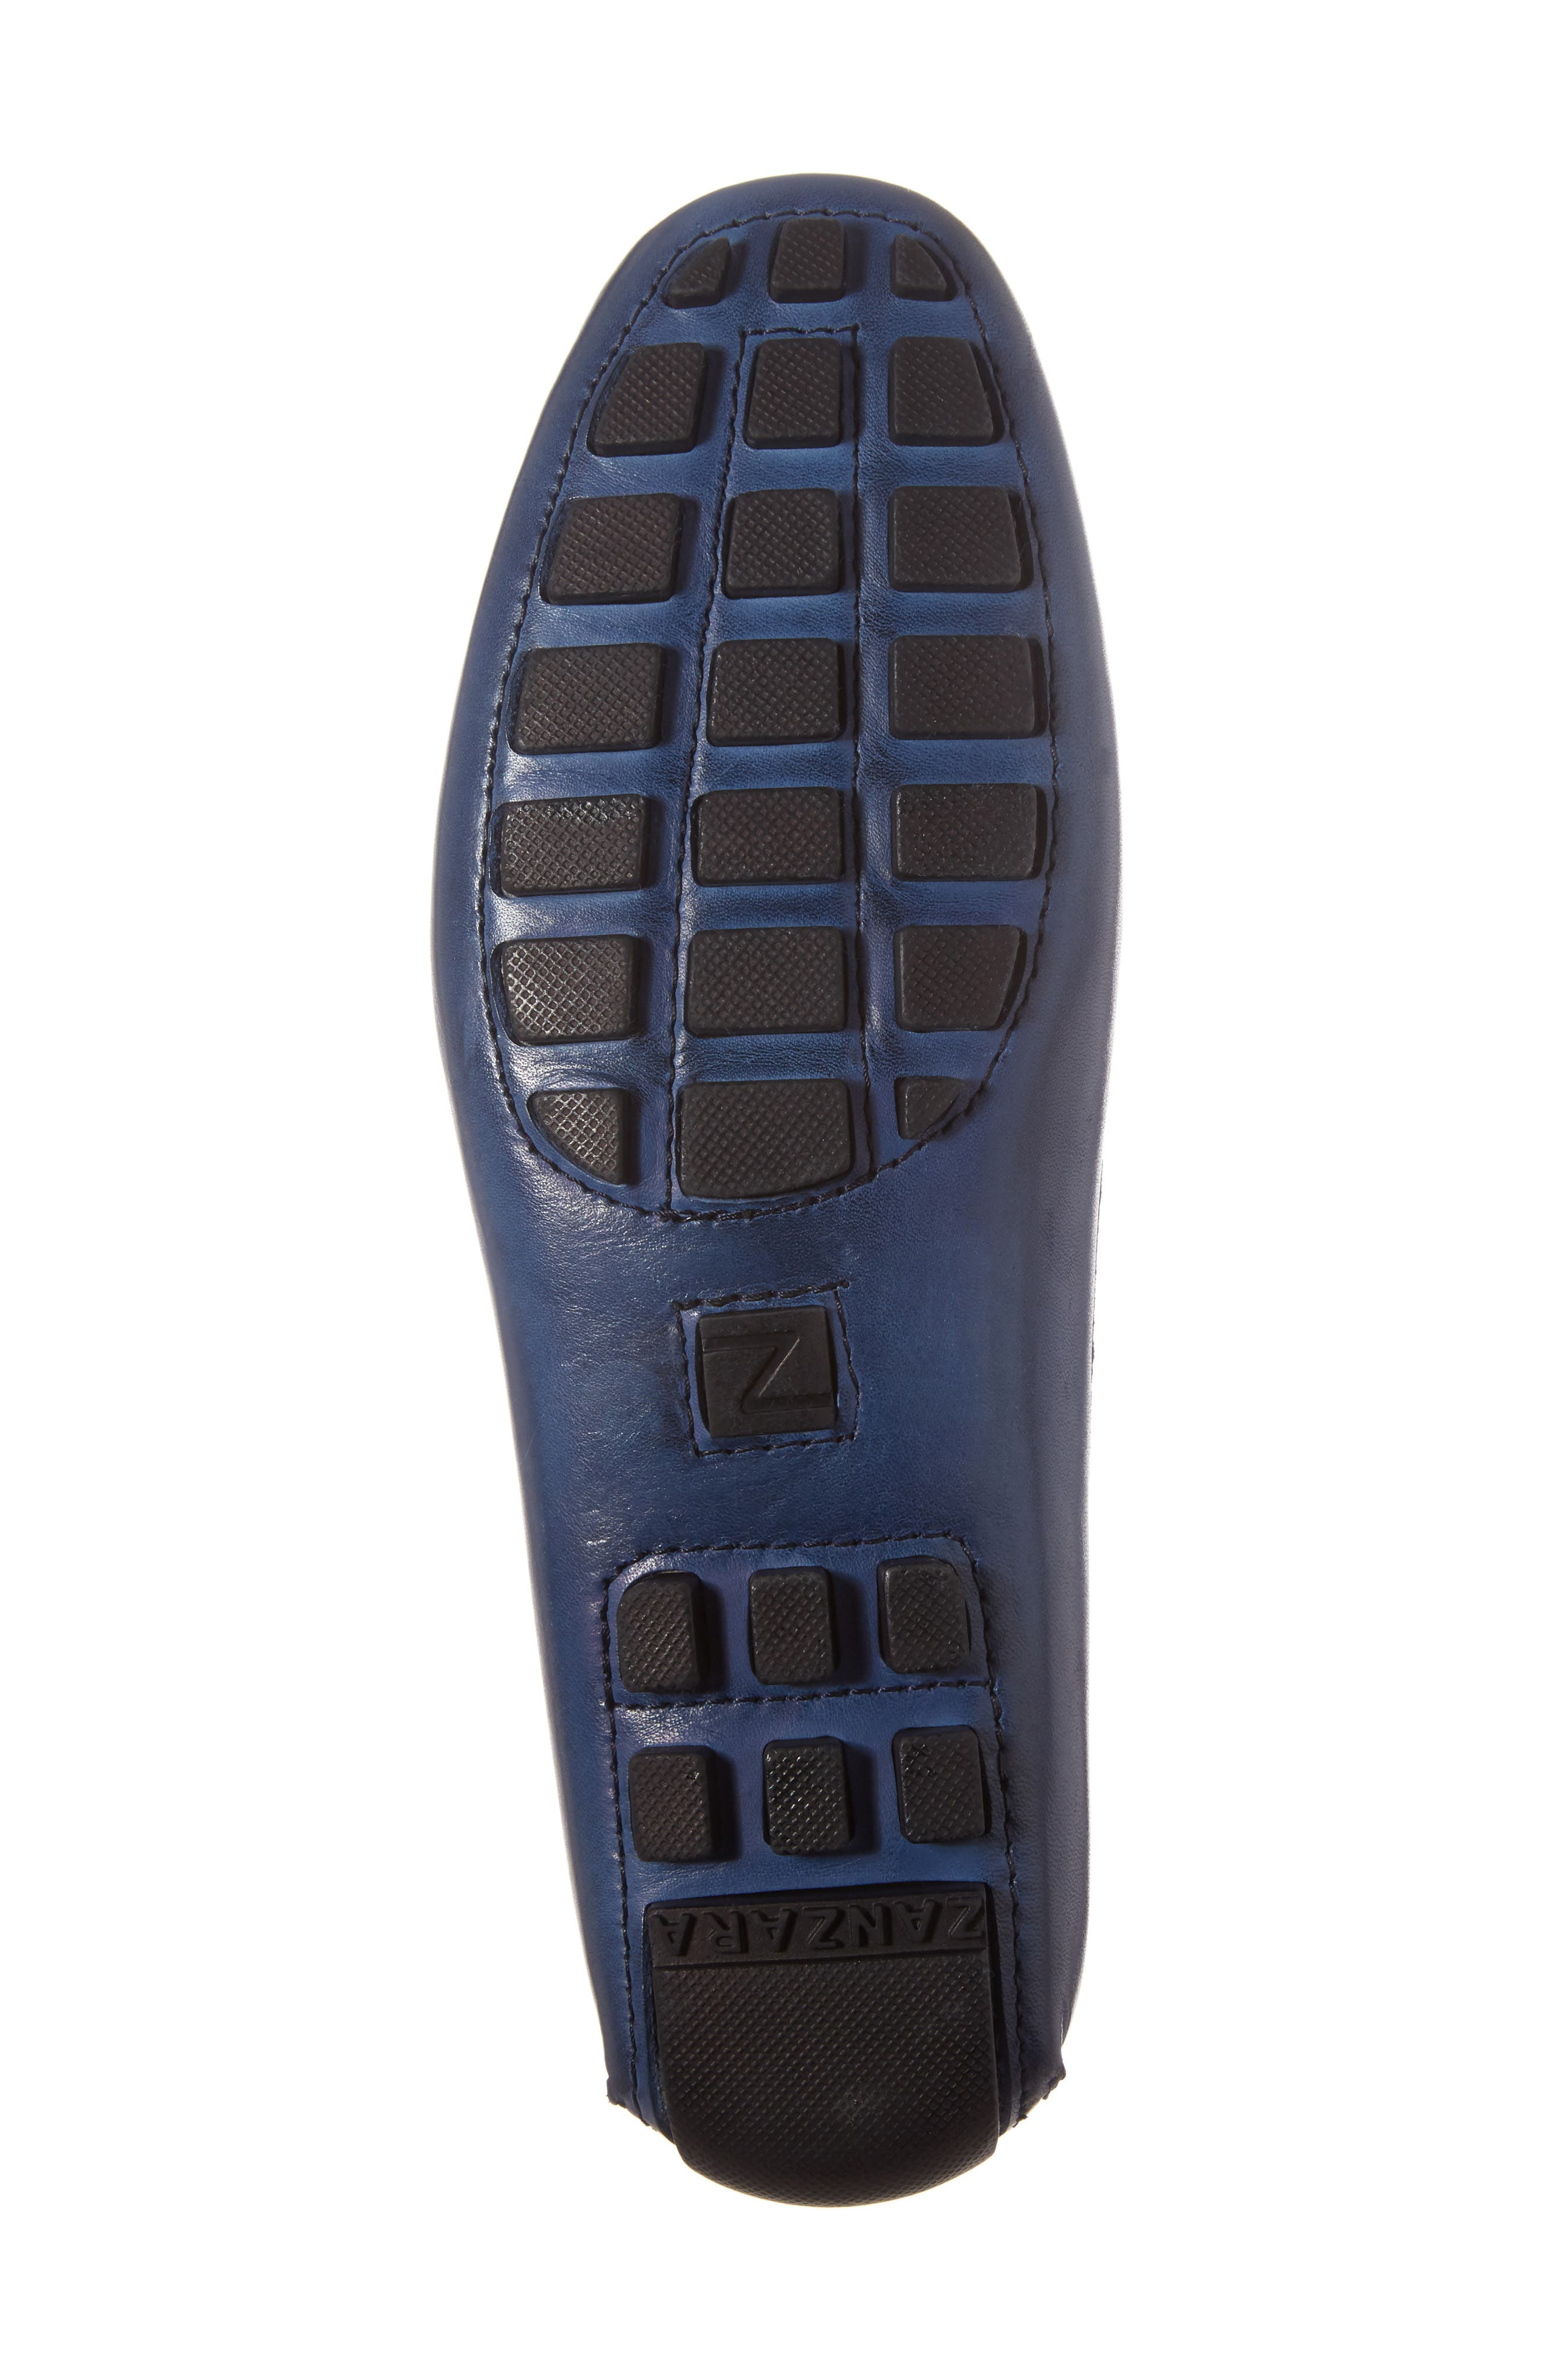 ZANZARA,                             Francesca Driving Shoe,                             Alternate thumbnail 6, color,                             BLUE LEATHER